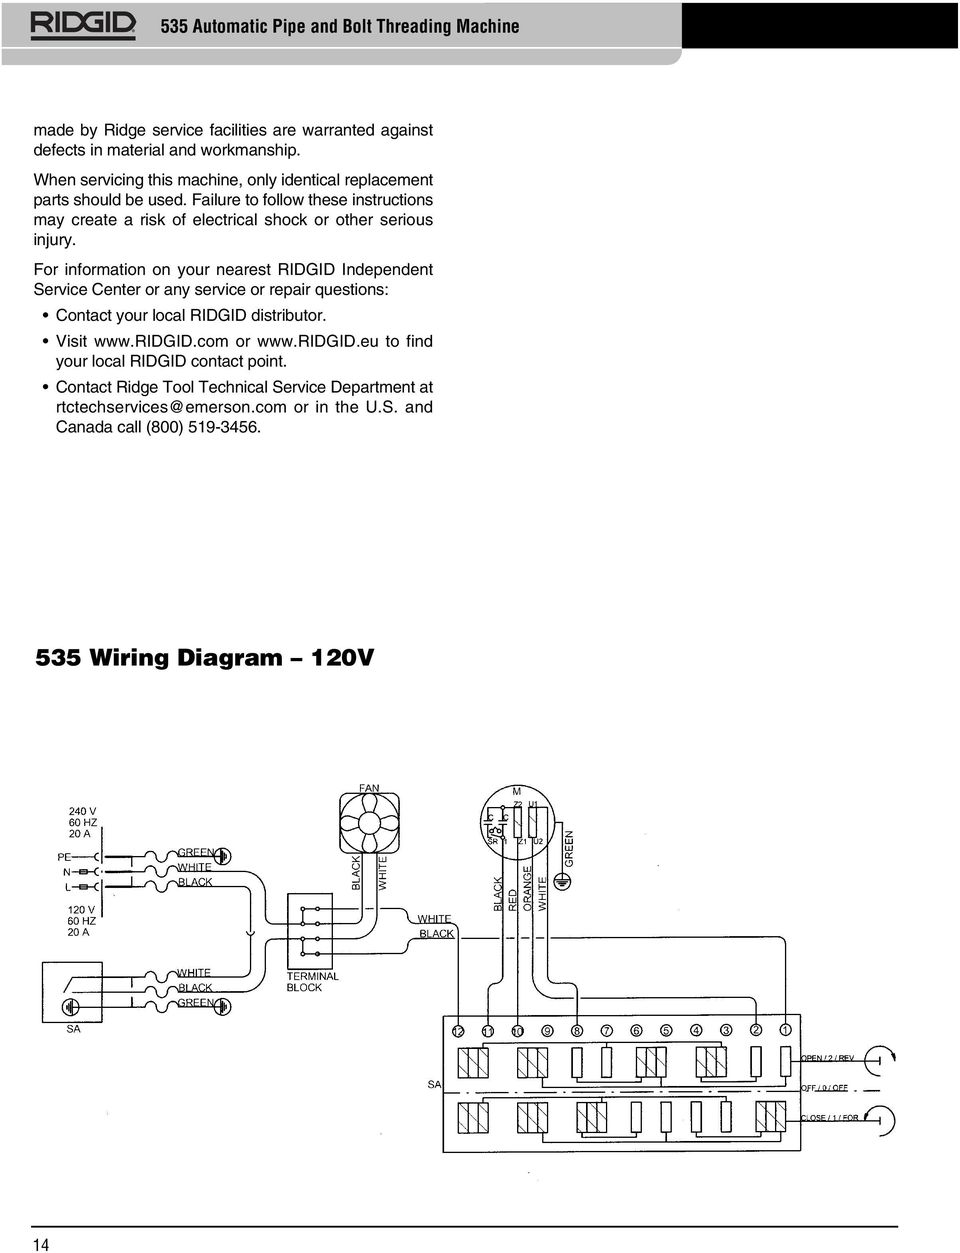 535-a automatic pipe and bolt threading machine - pdf free download  docplayer